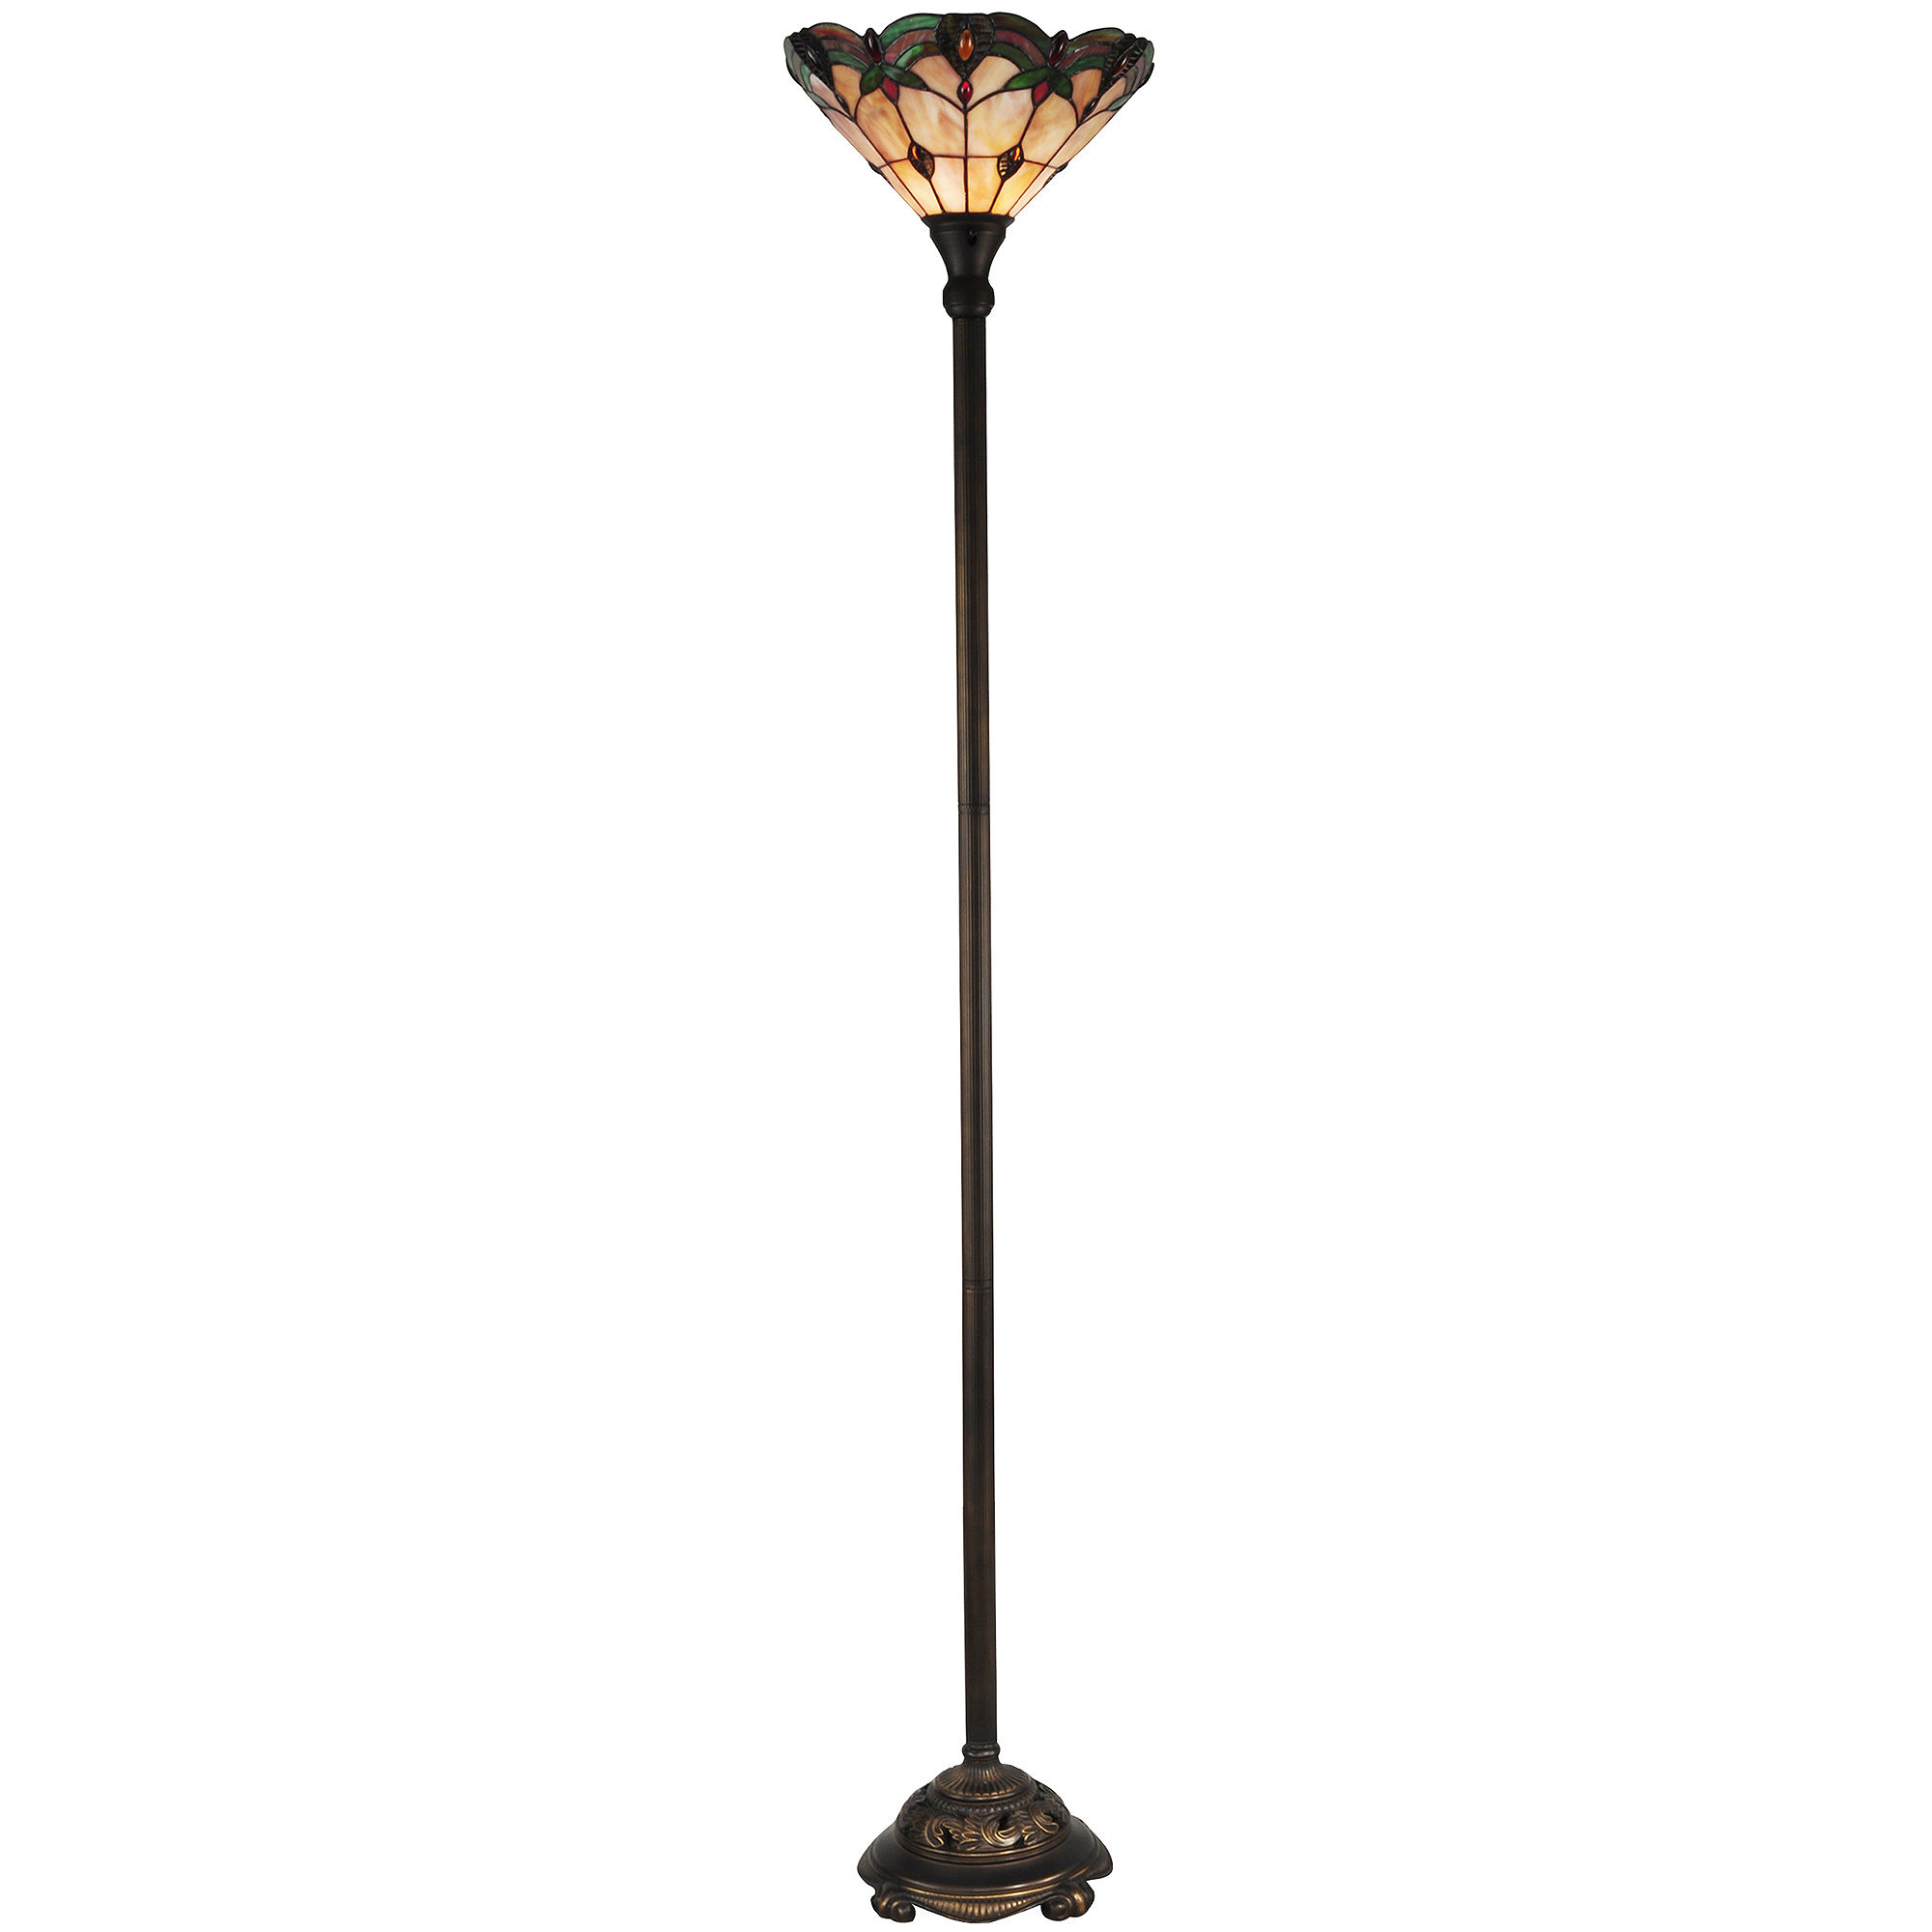 Dale tiffany floor lamps buy dale tiffany floor lamp for Buy floor lamp online